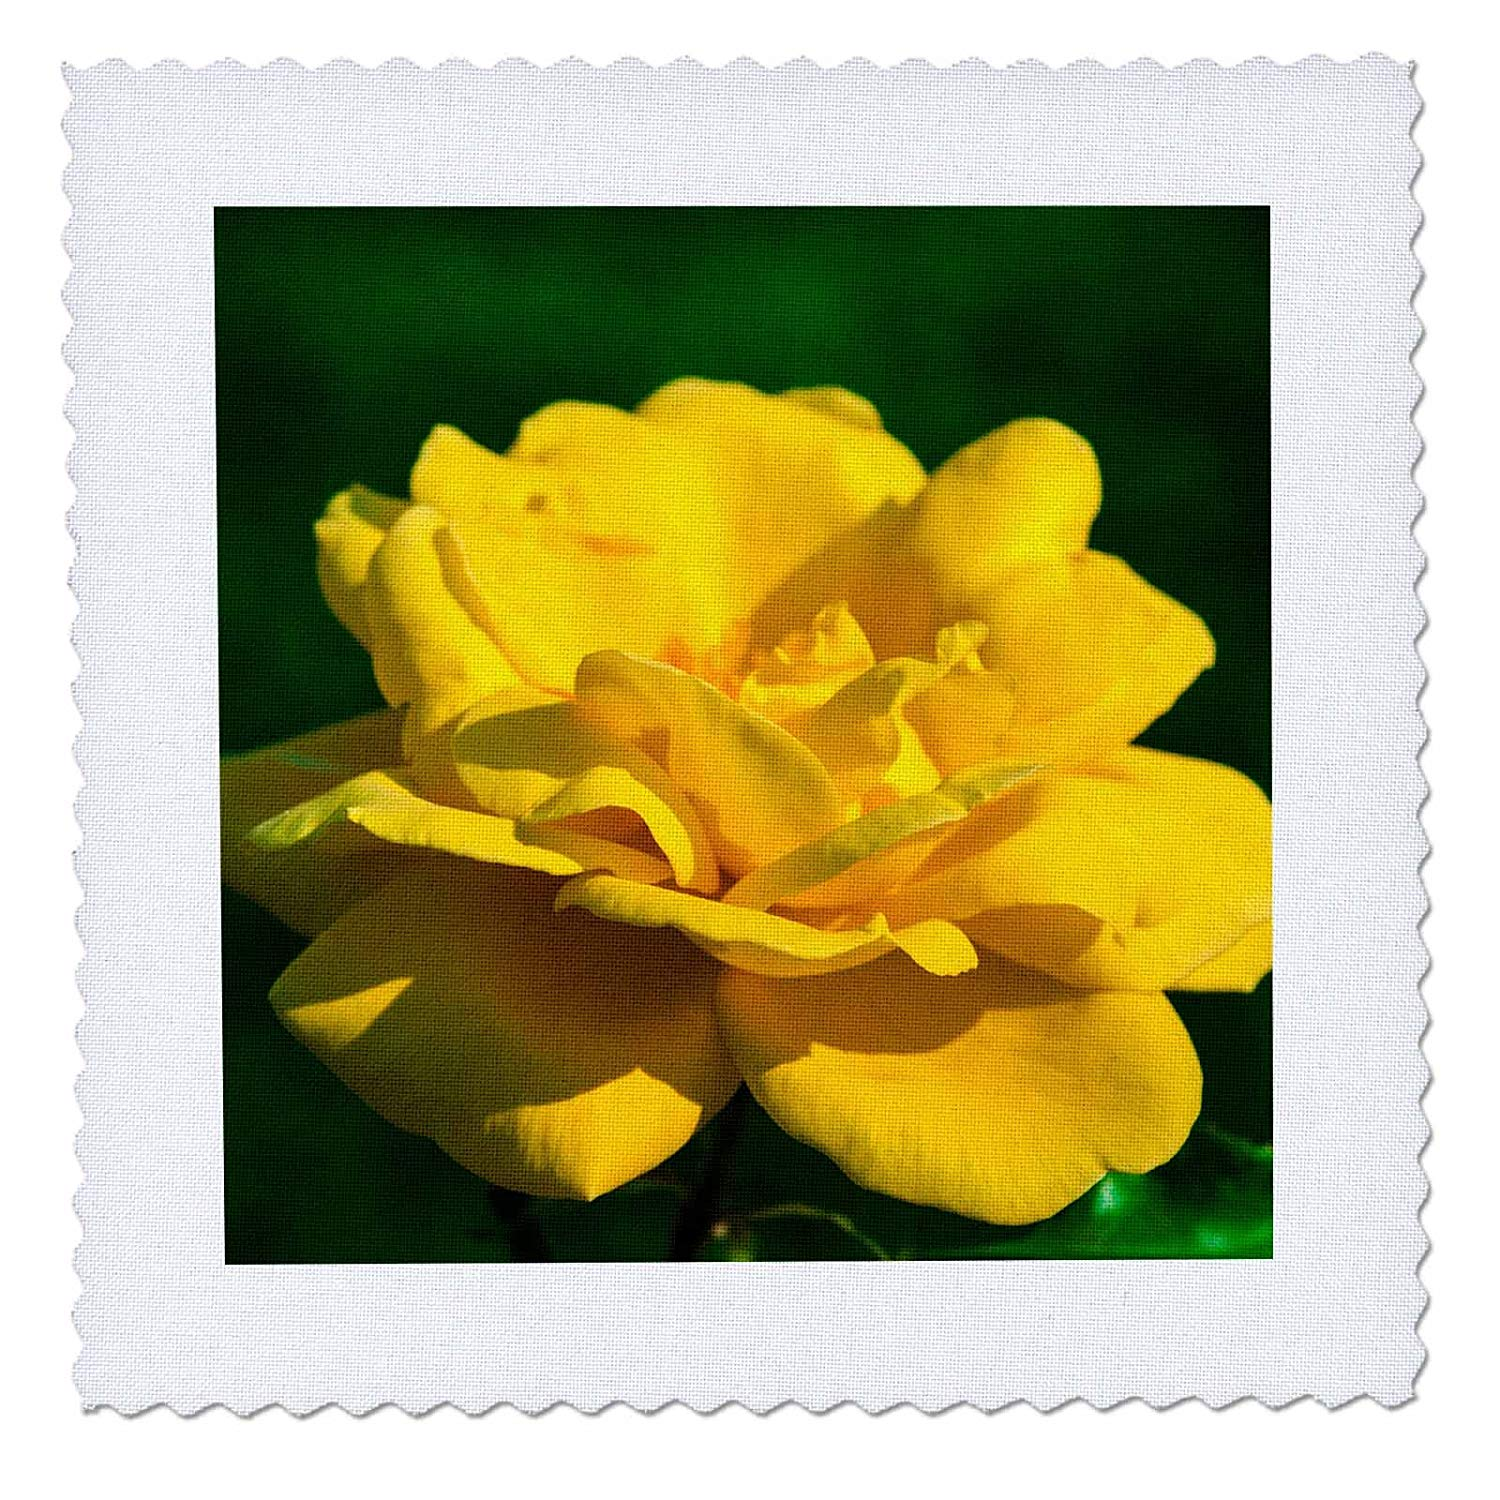 Three Yellow Rose Flowers Against The Dark Green Background 3dRose Alexis Photography Flowers Rose T-Shirts